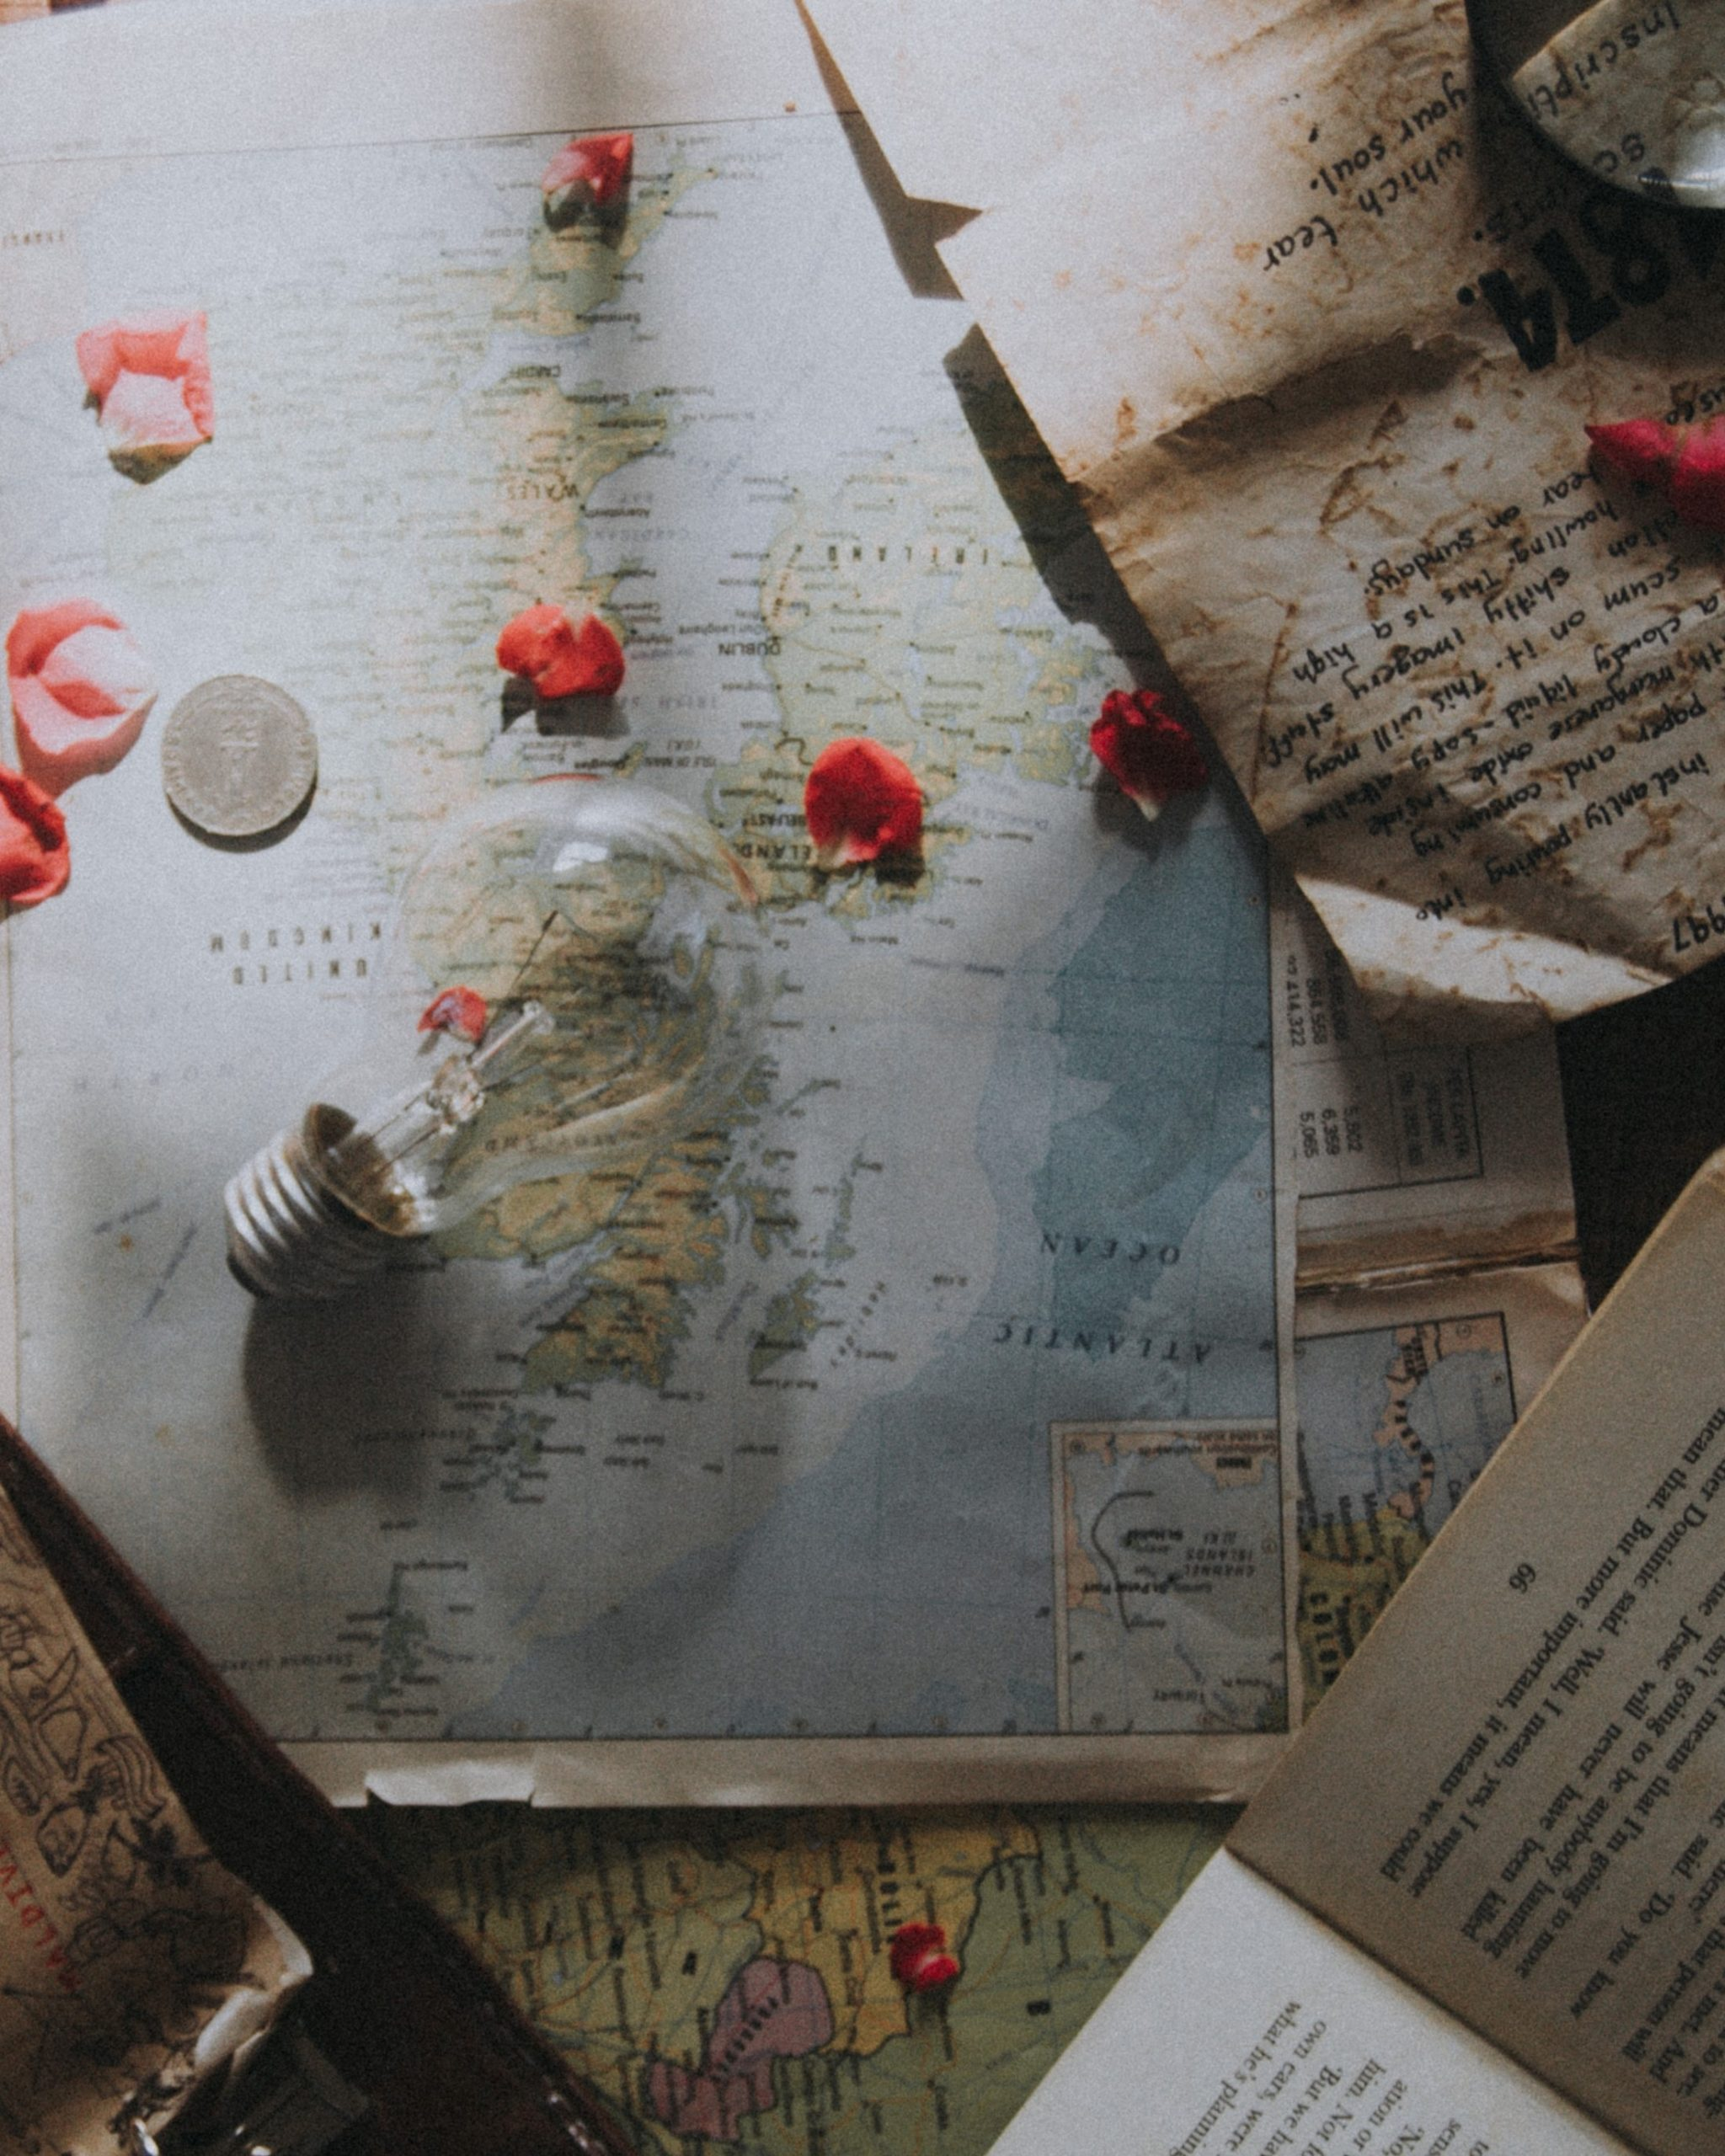 A Straight Line or a Wandering Path? Mapping the story of your life so far